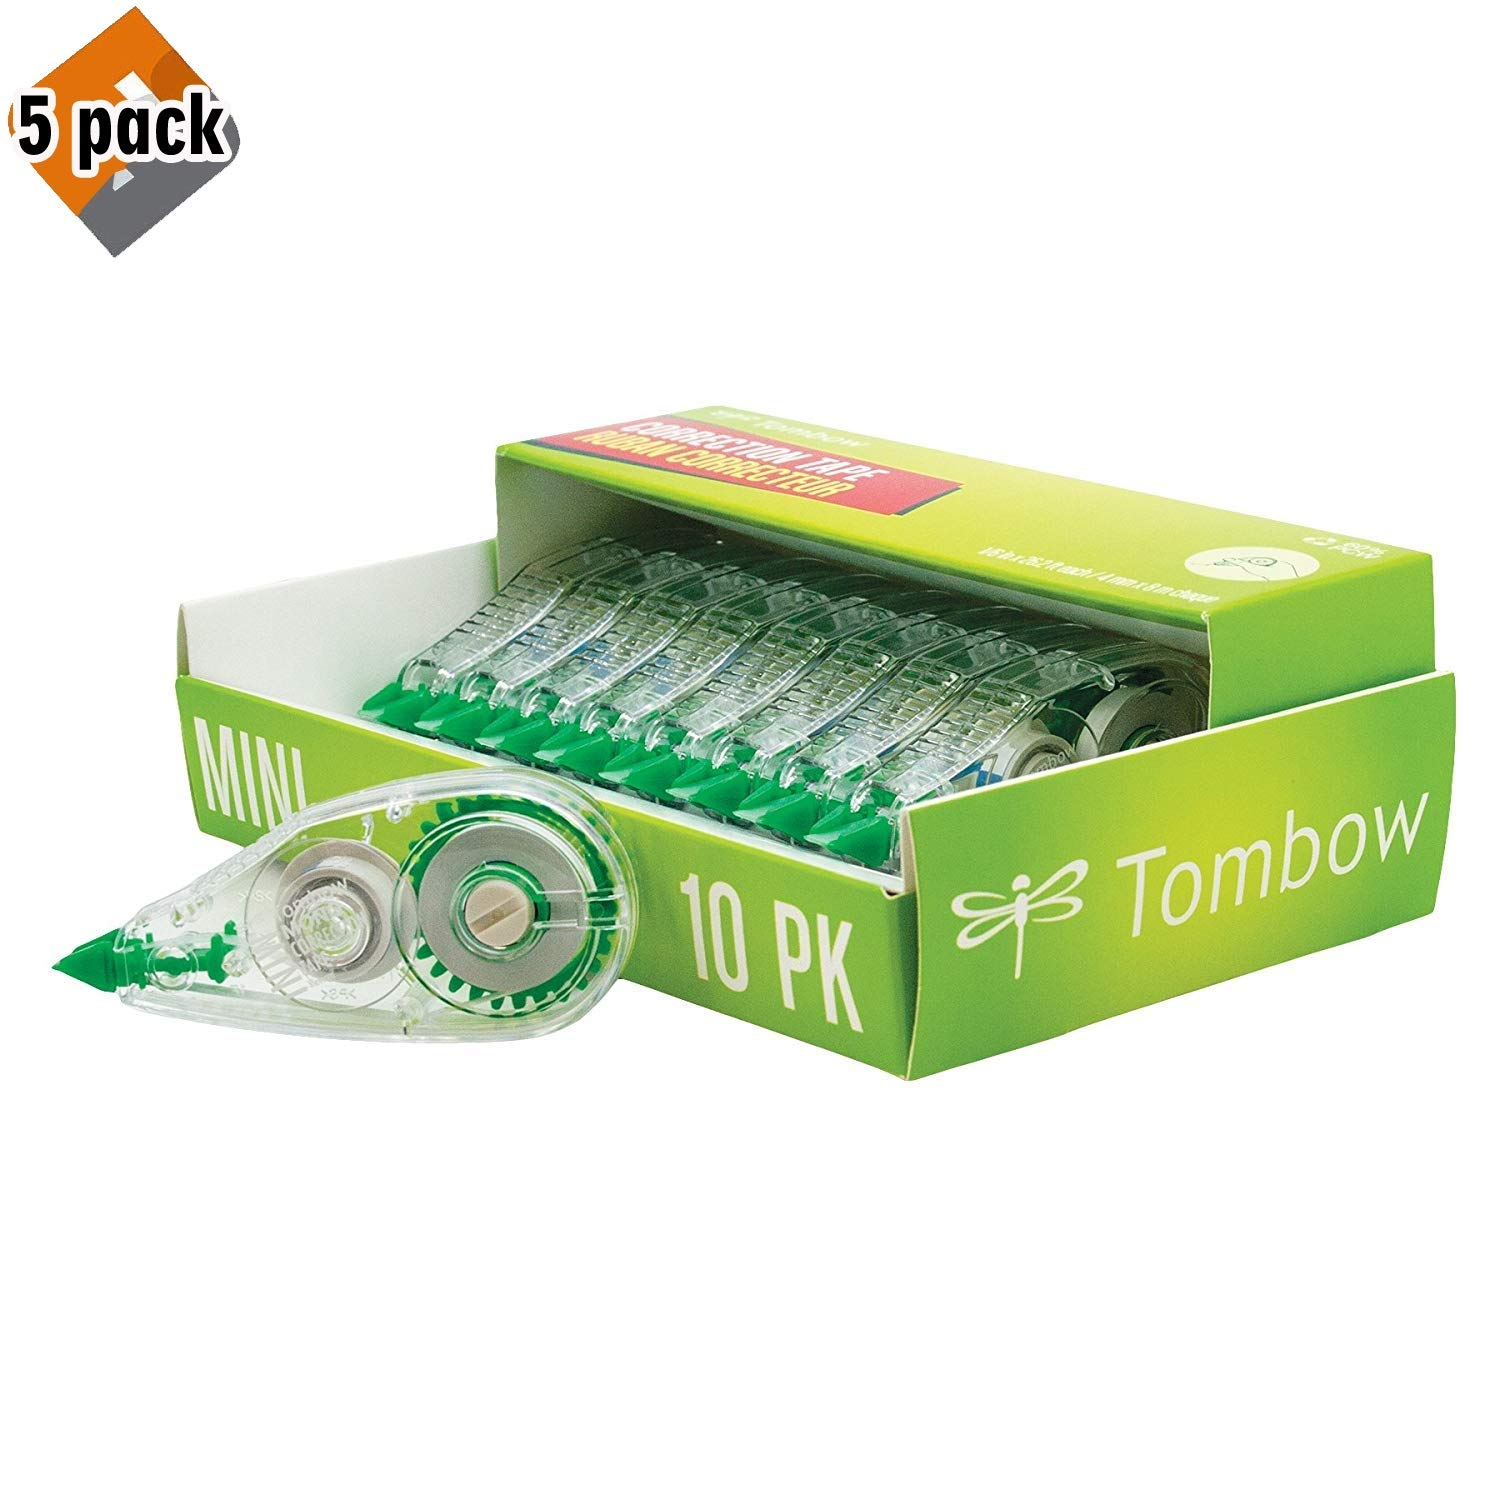 Tombow 68722 MONO Mini Correction Tape, 10-Pack. Easy to Use Applicator for Instant Corrections - Pack of 5